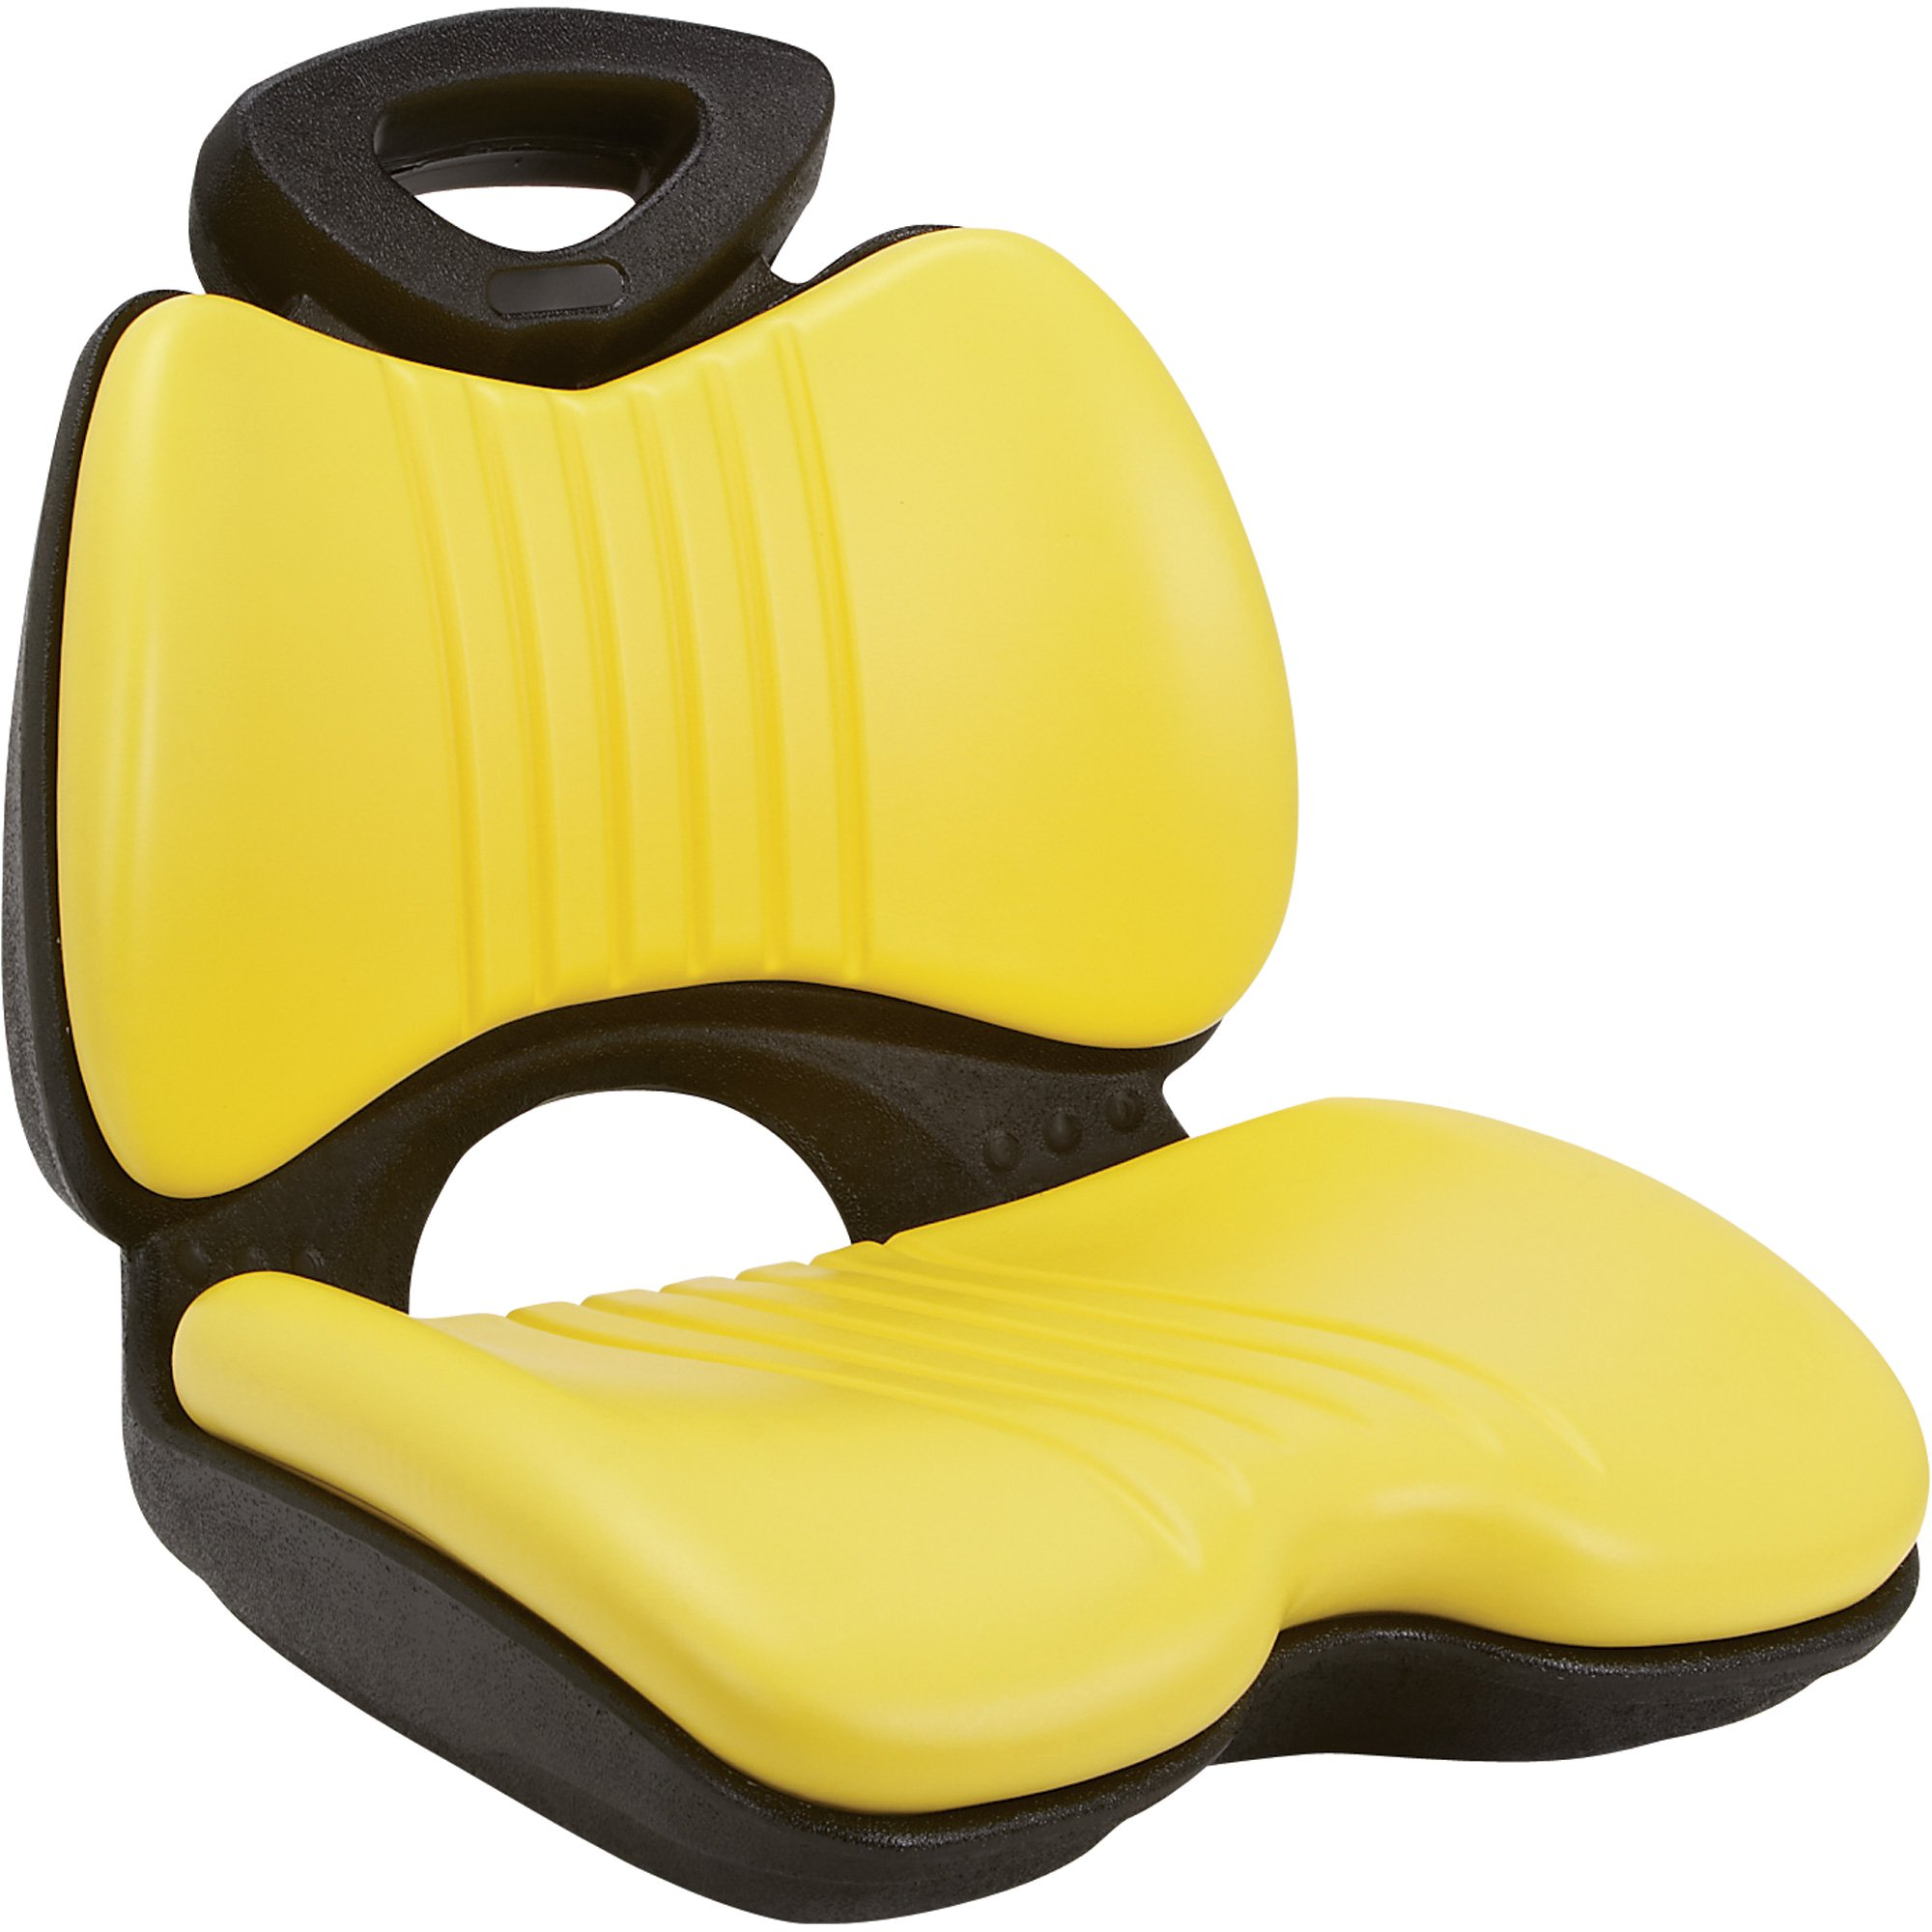 K & M Comfort Formed Lawn/Garden Tractor Seat — Yellow ...